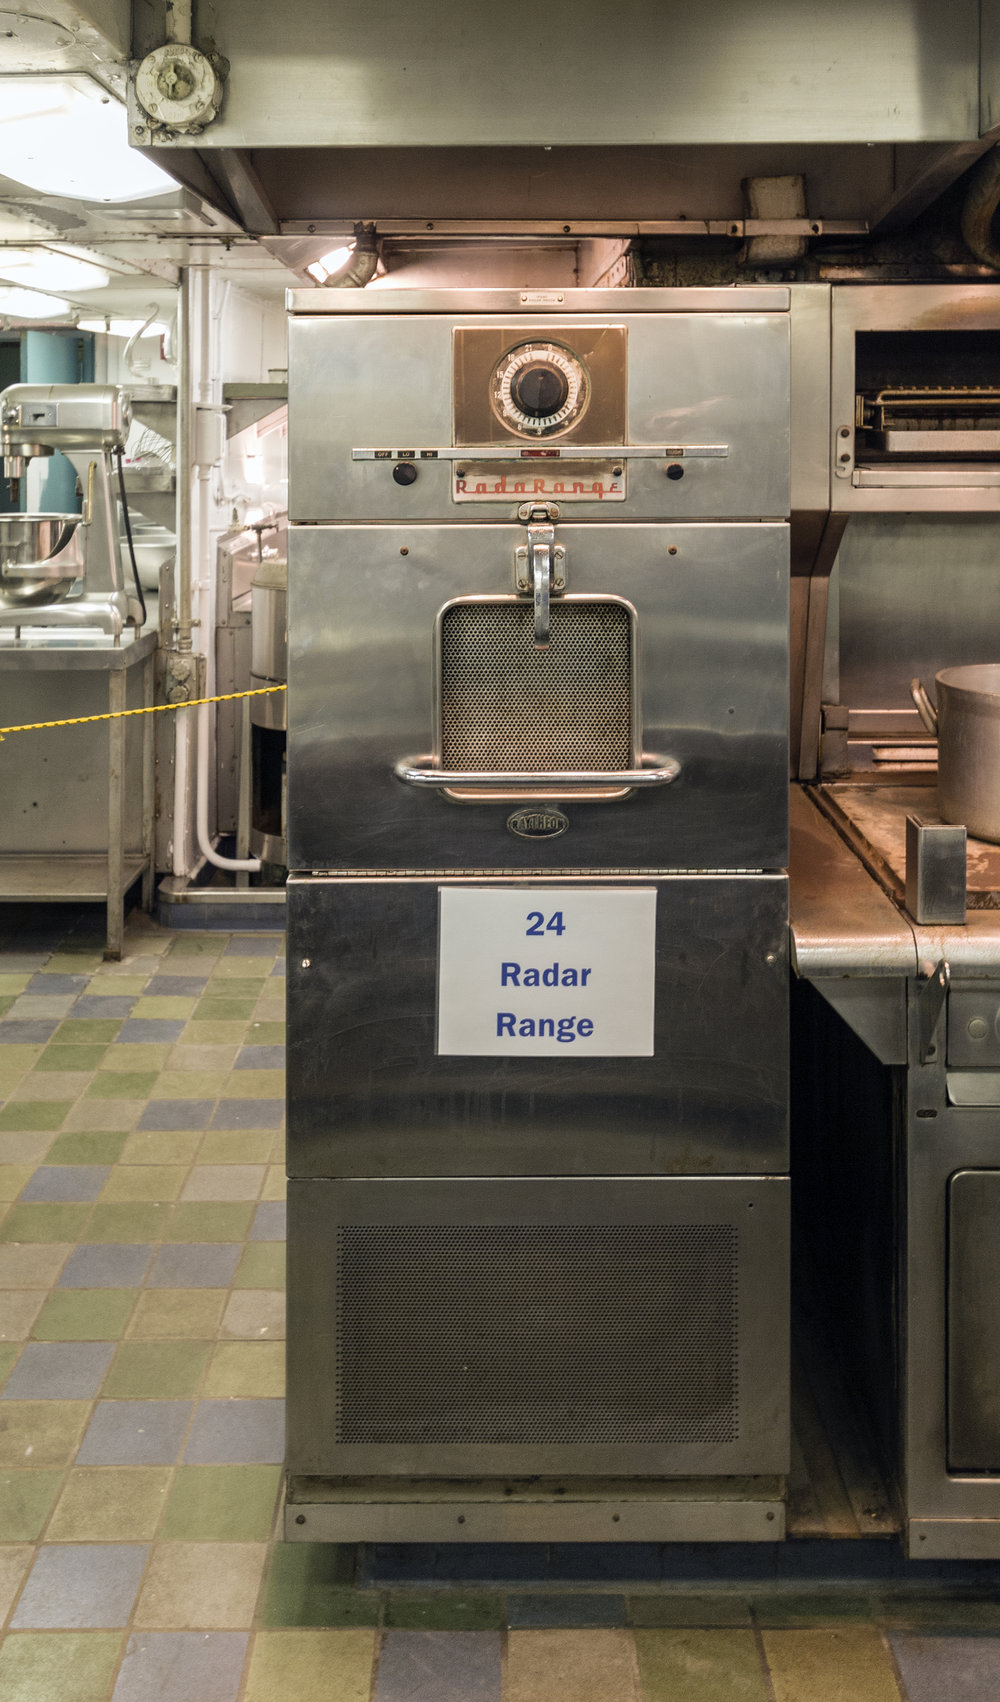 A Raytheon microwave oven.Acroterion/Wikimedia Commons (CC BY-SA 3.0)